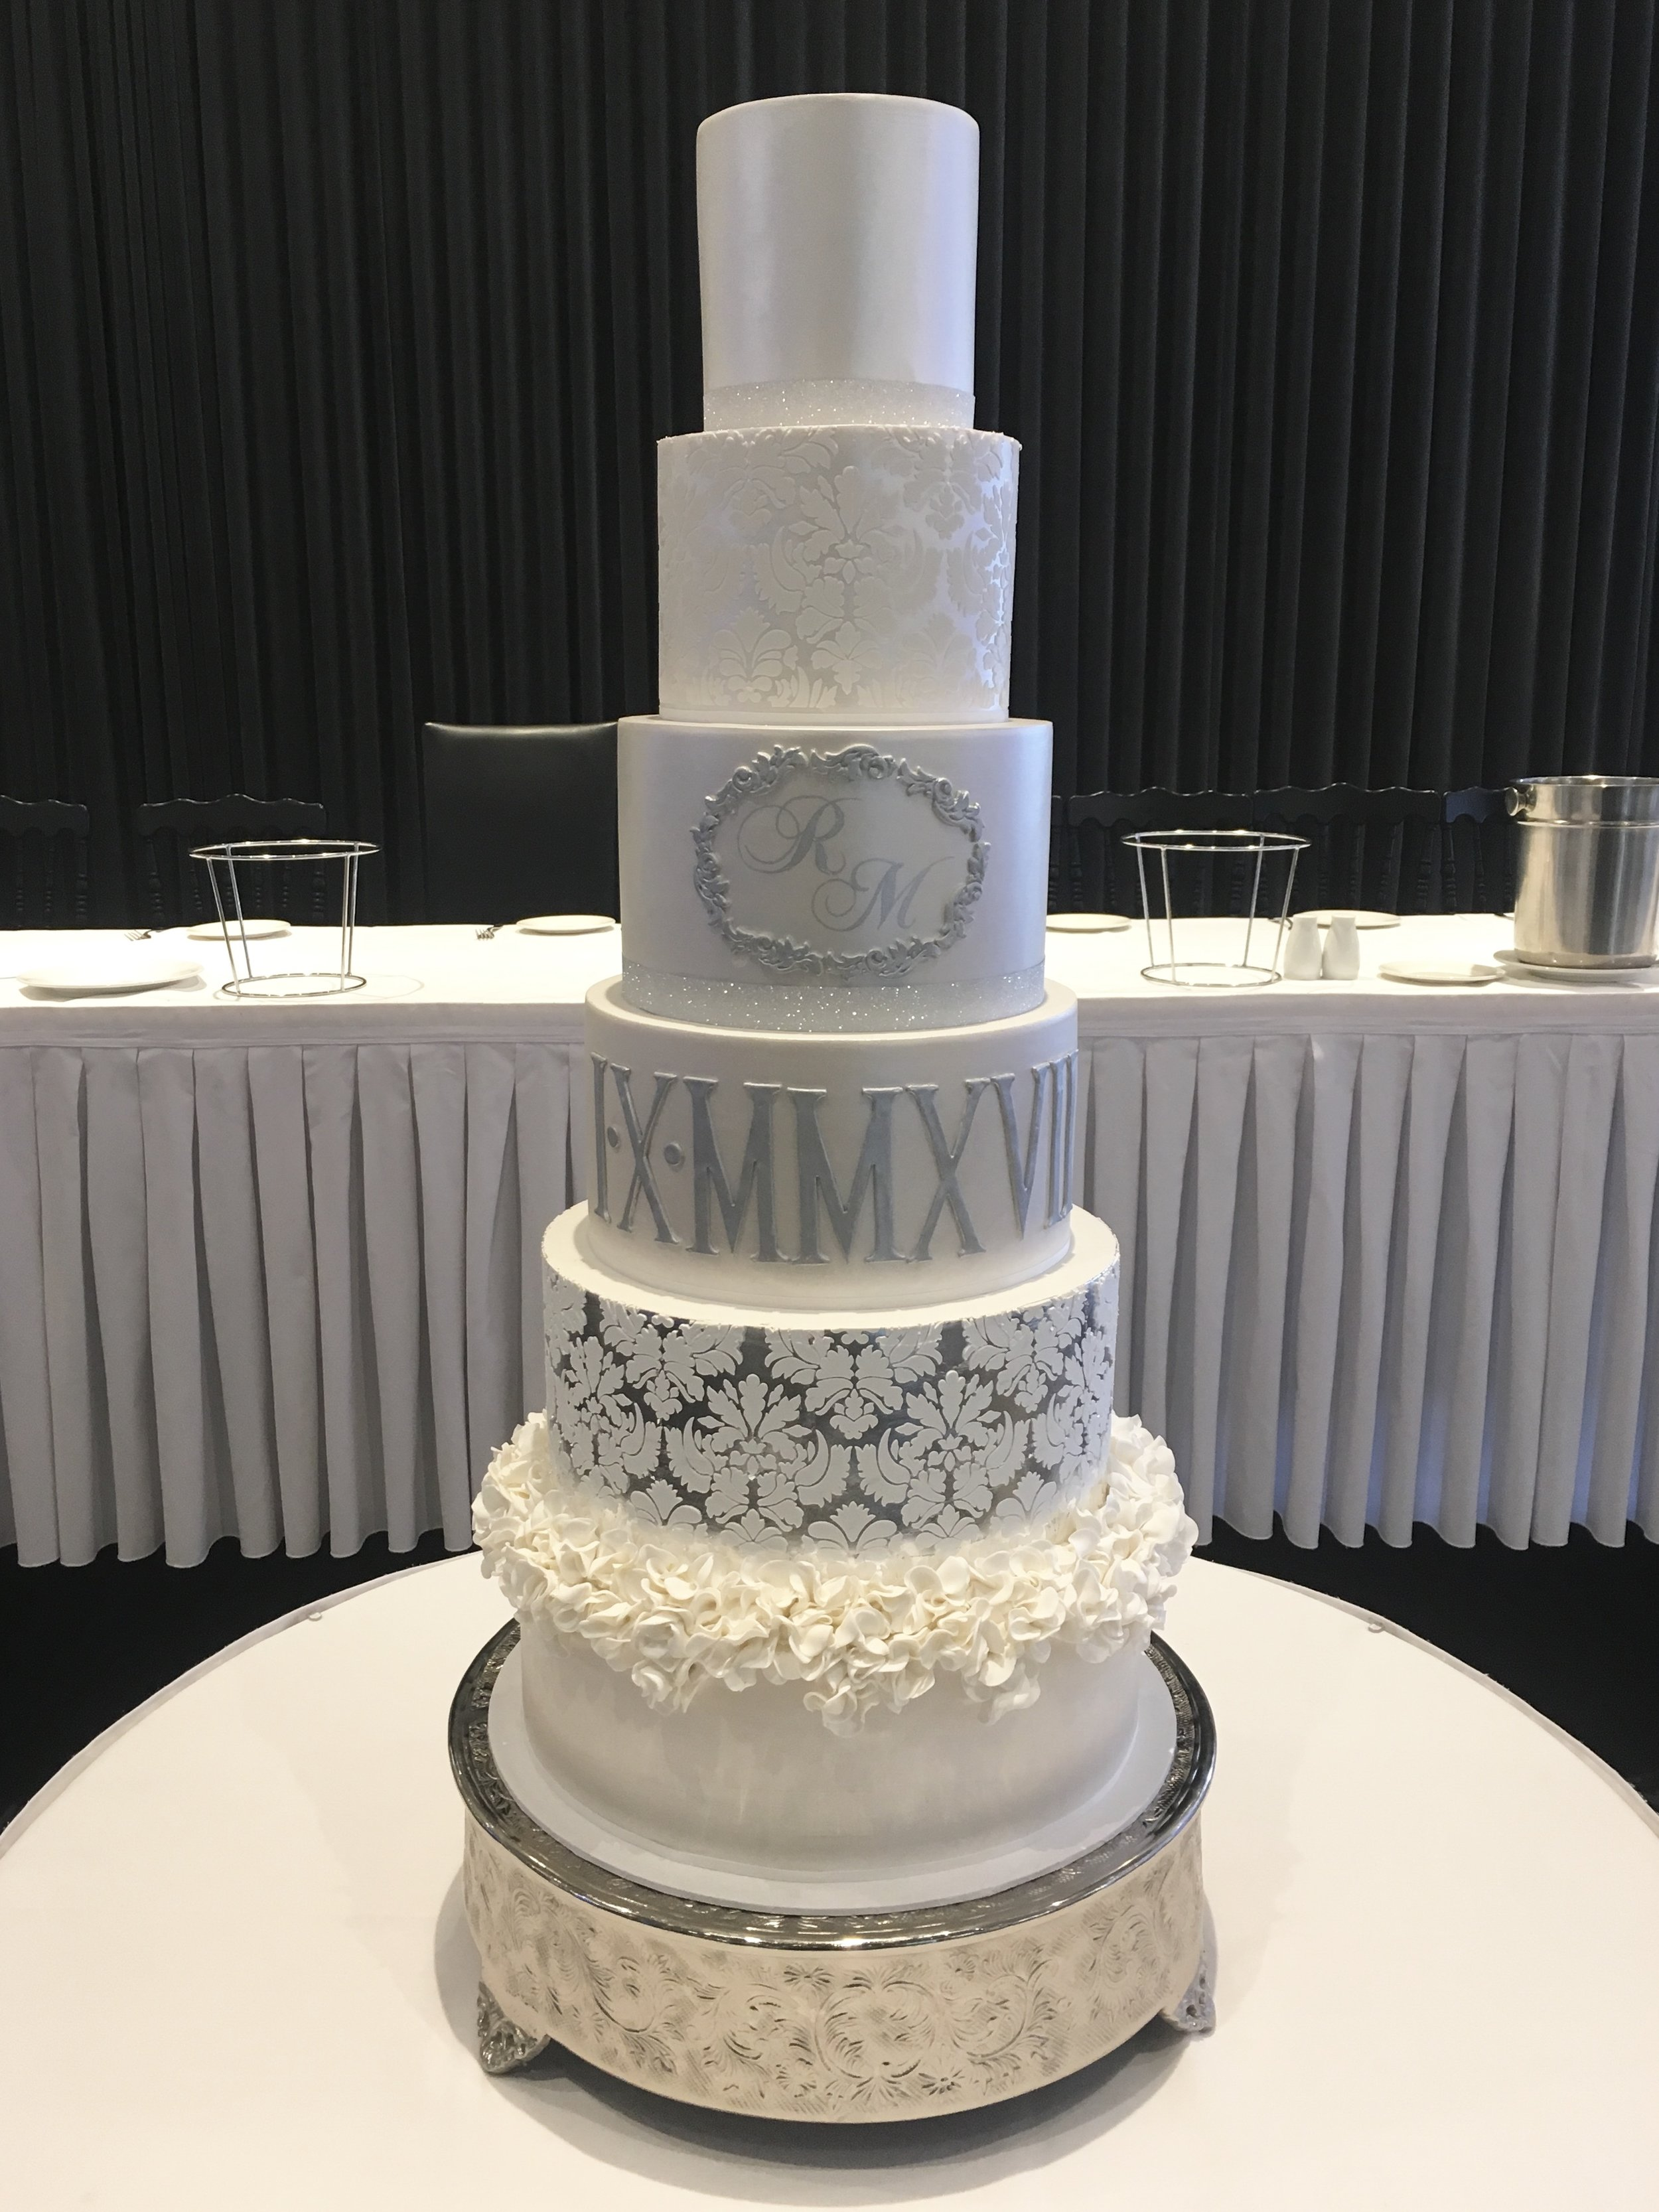 White and Silver Showstopper Wedding Cake